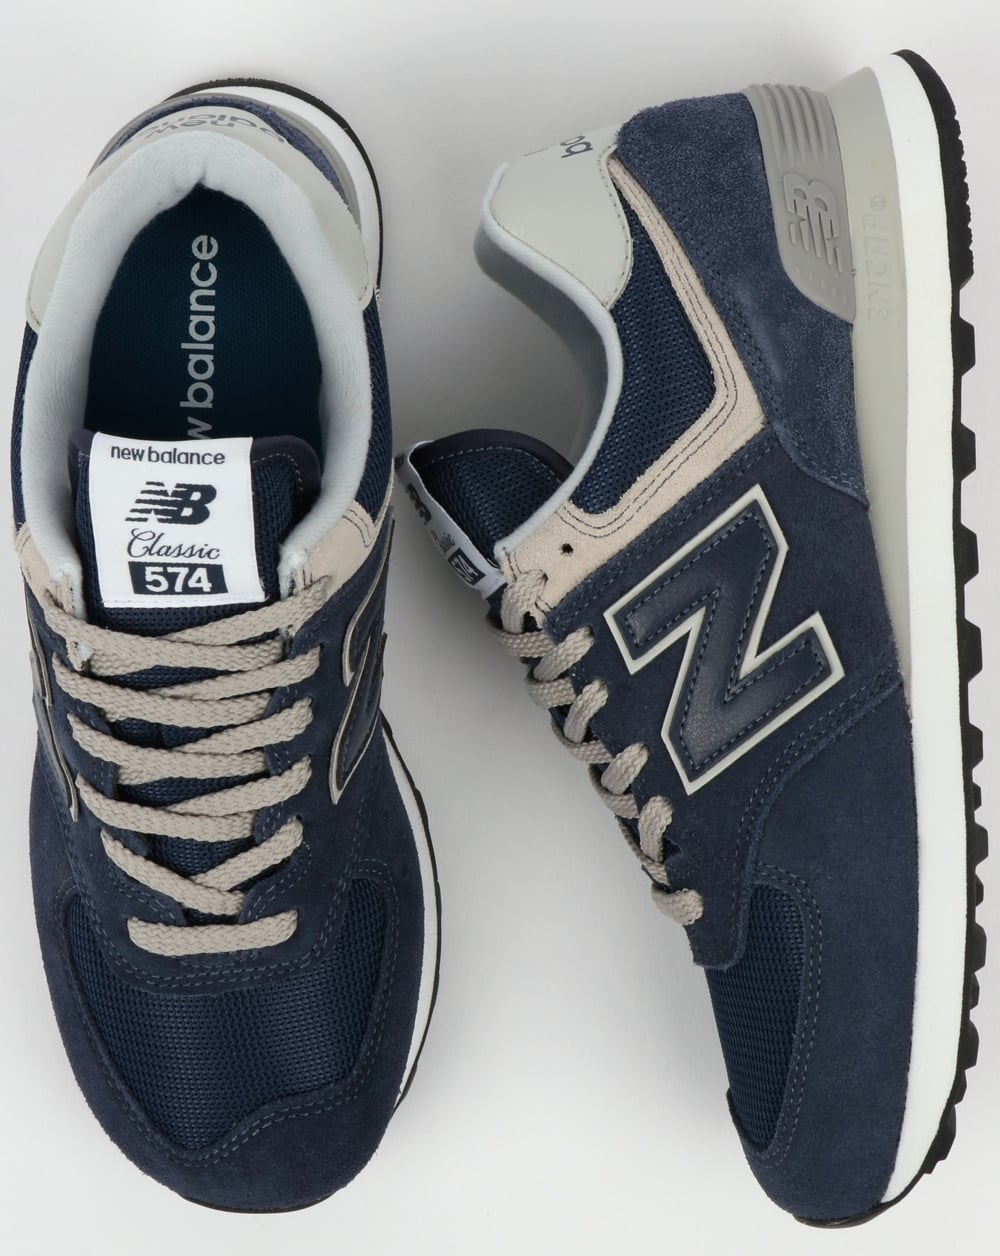 info for 94140 54c81 New Balance 574 Trainers Navy/Grey